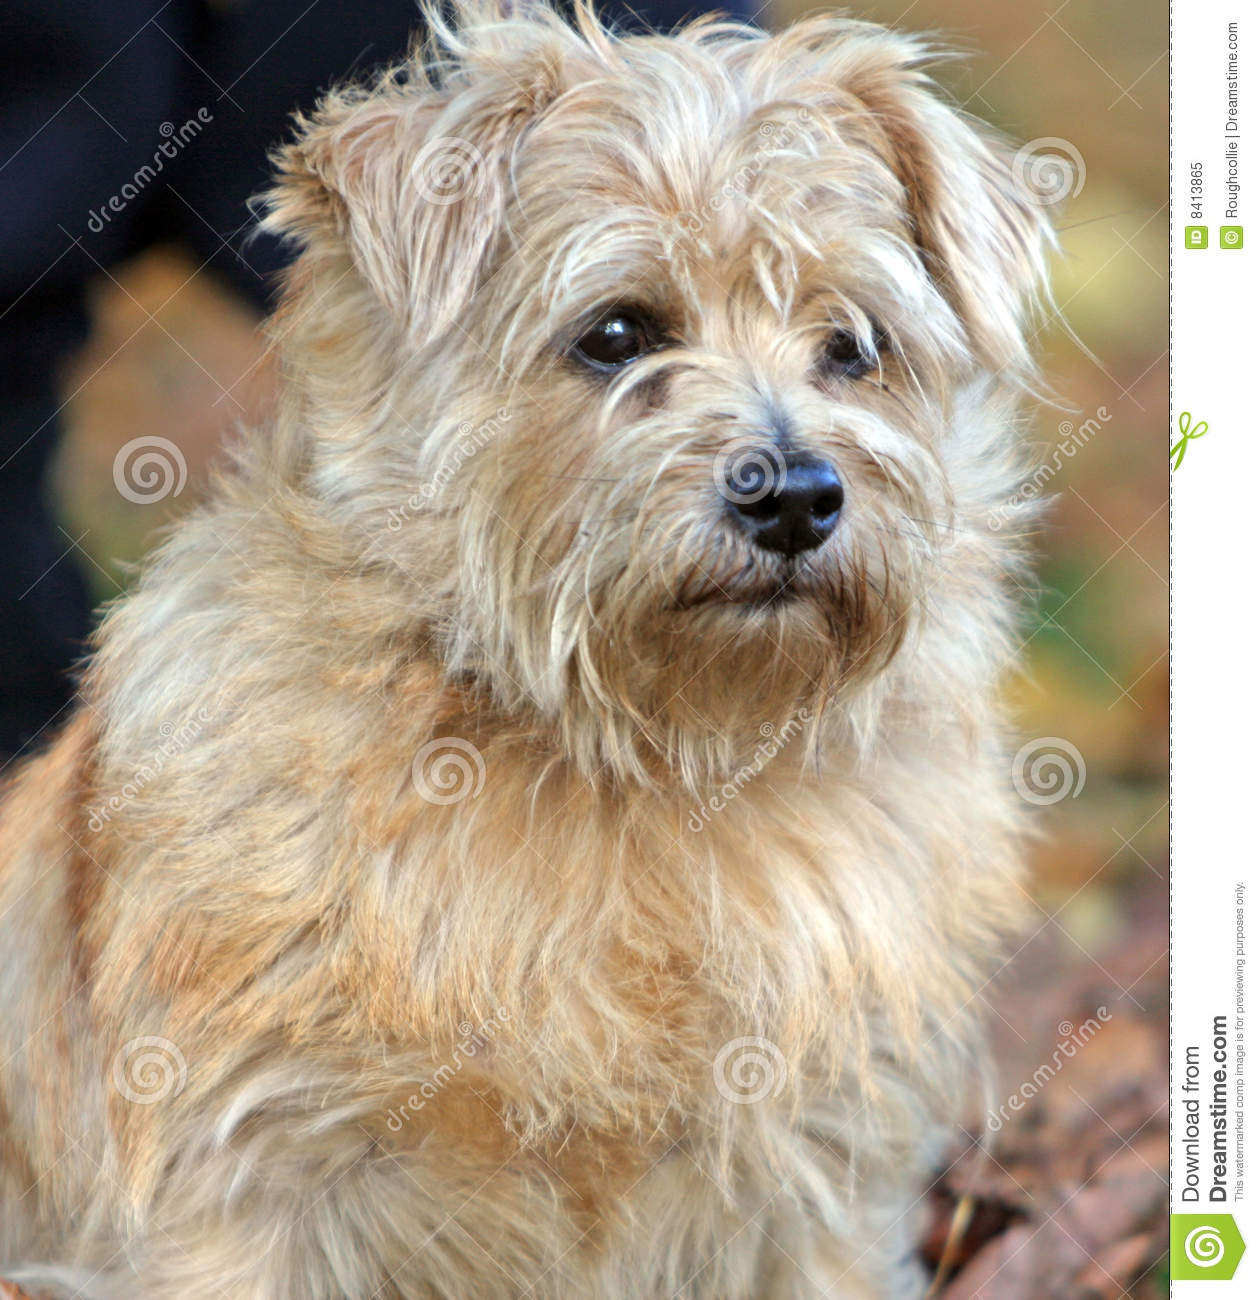 Fall Dog Wallpaper Norfolk Terrier Royalty Free Stock Photo Image 8413865